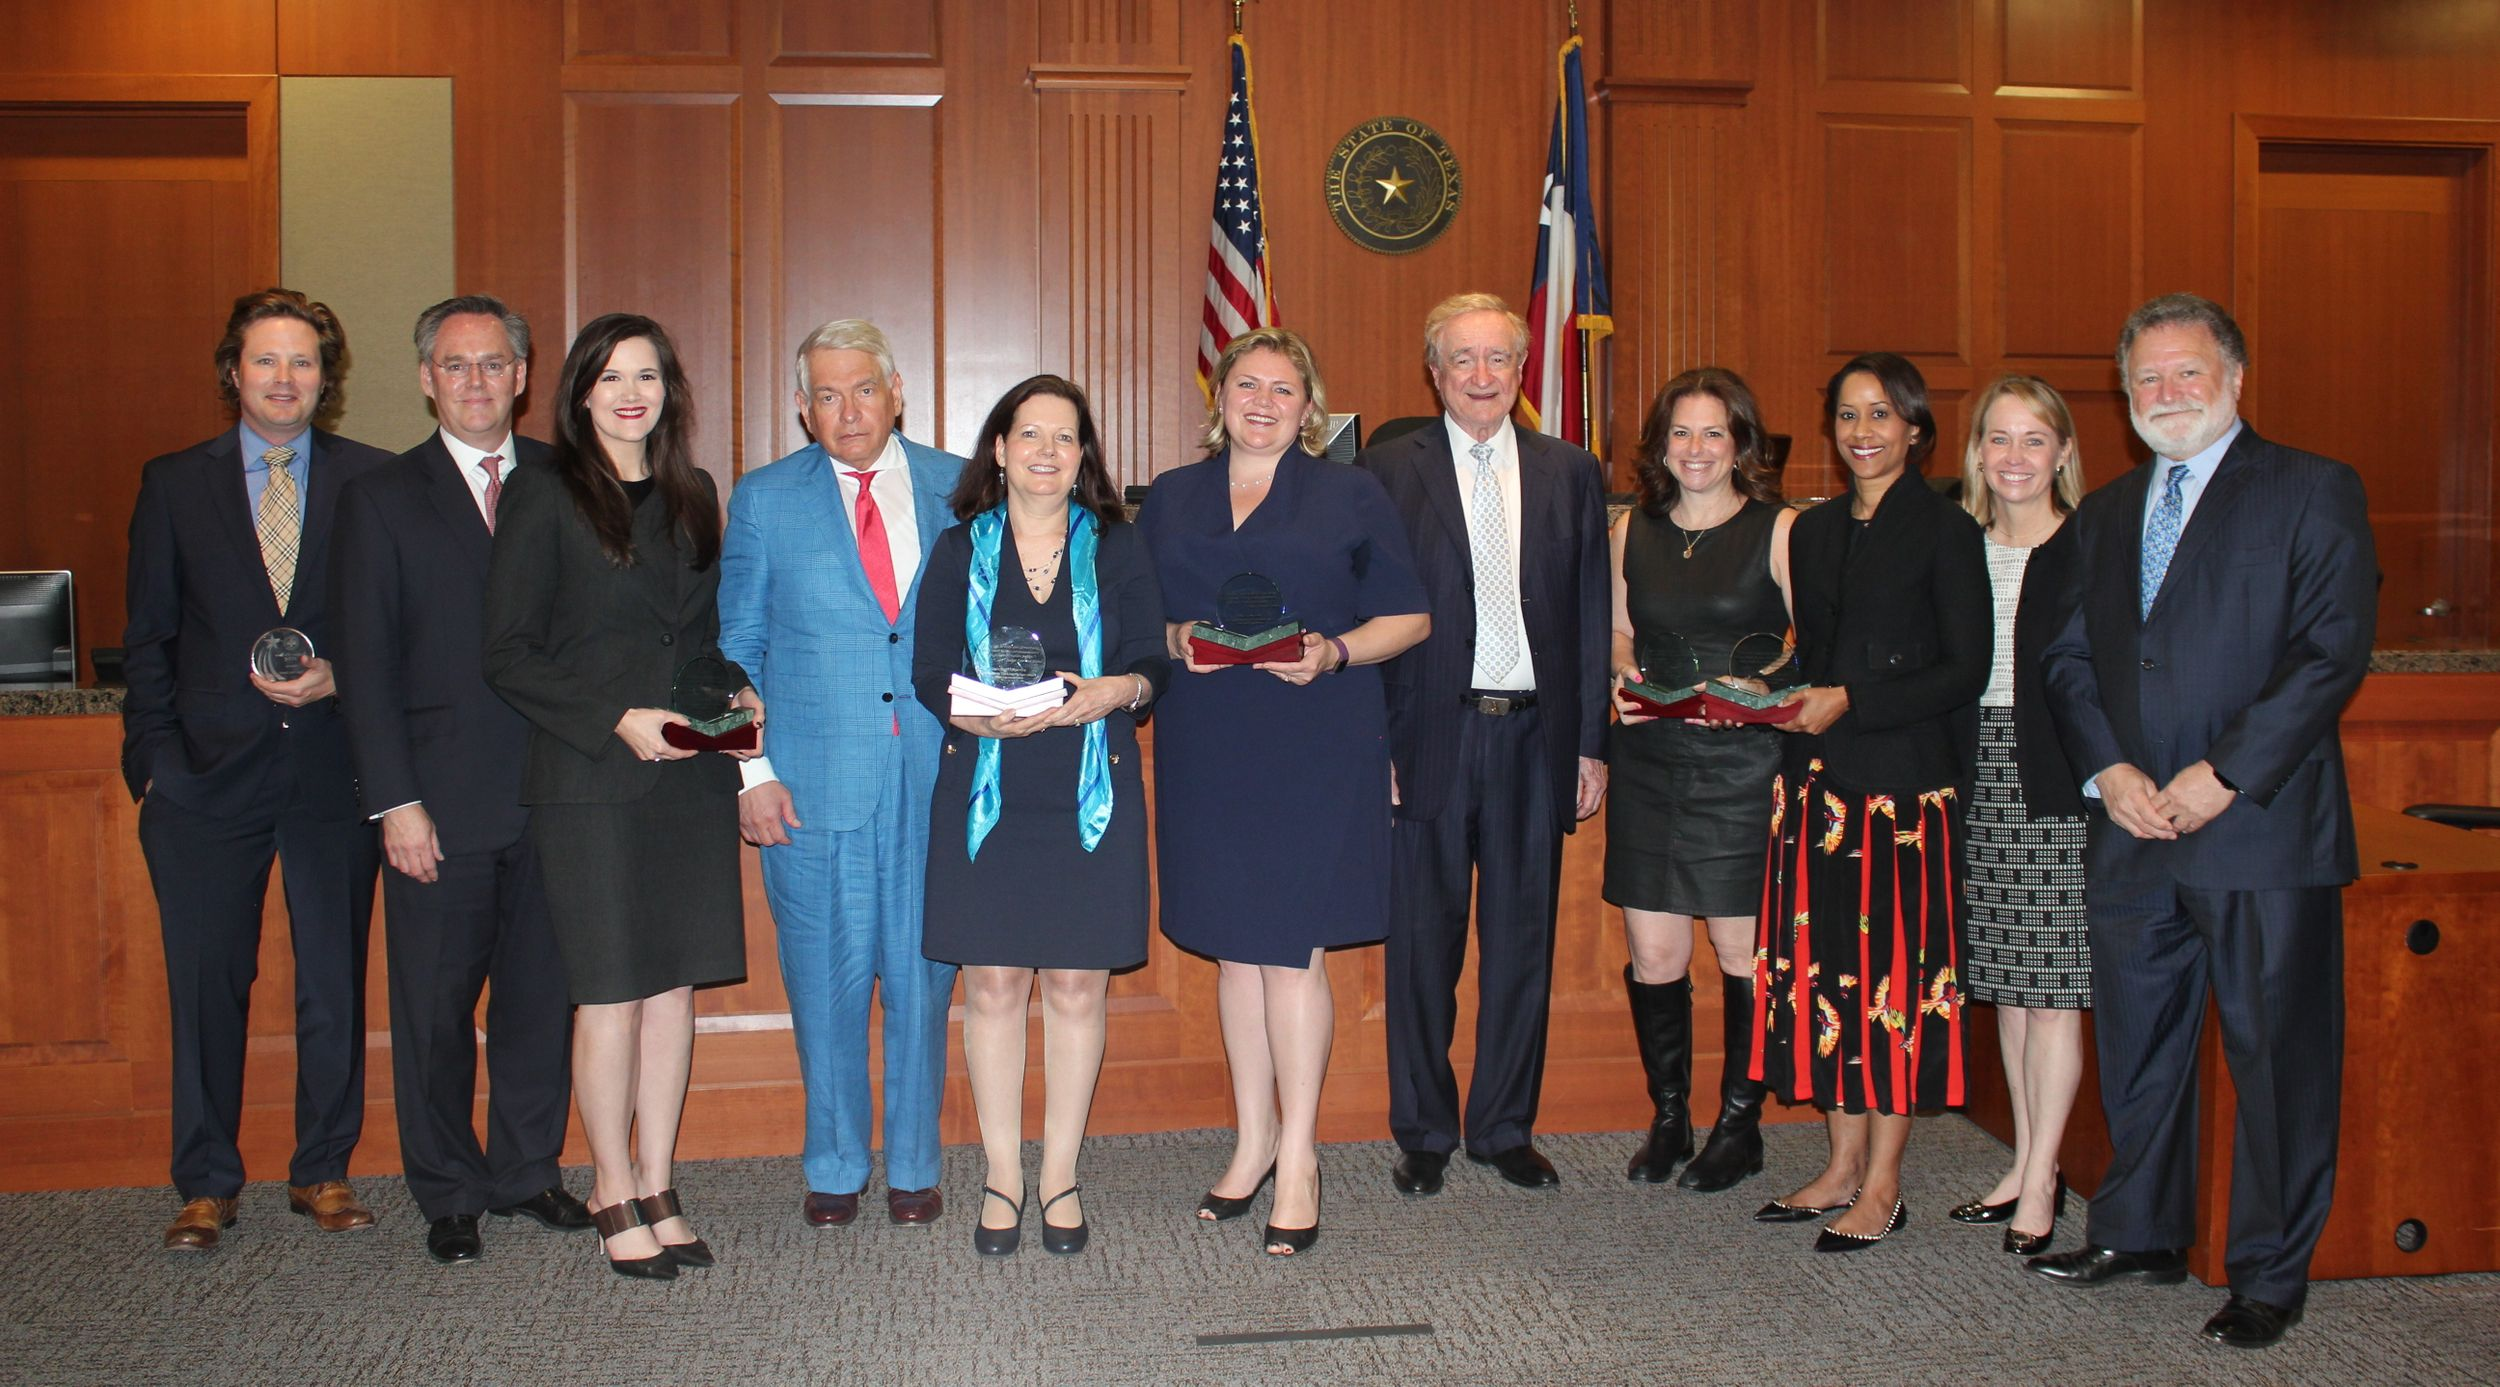 A row of guests and honorees at the Bench Bar Pro Bono Awards Ceremony